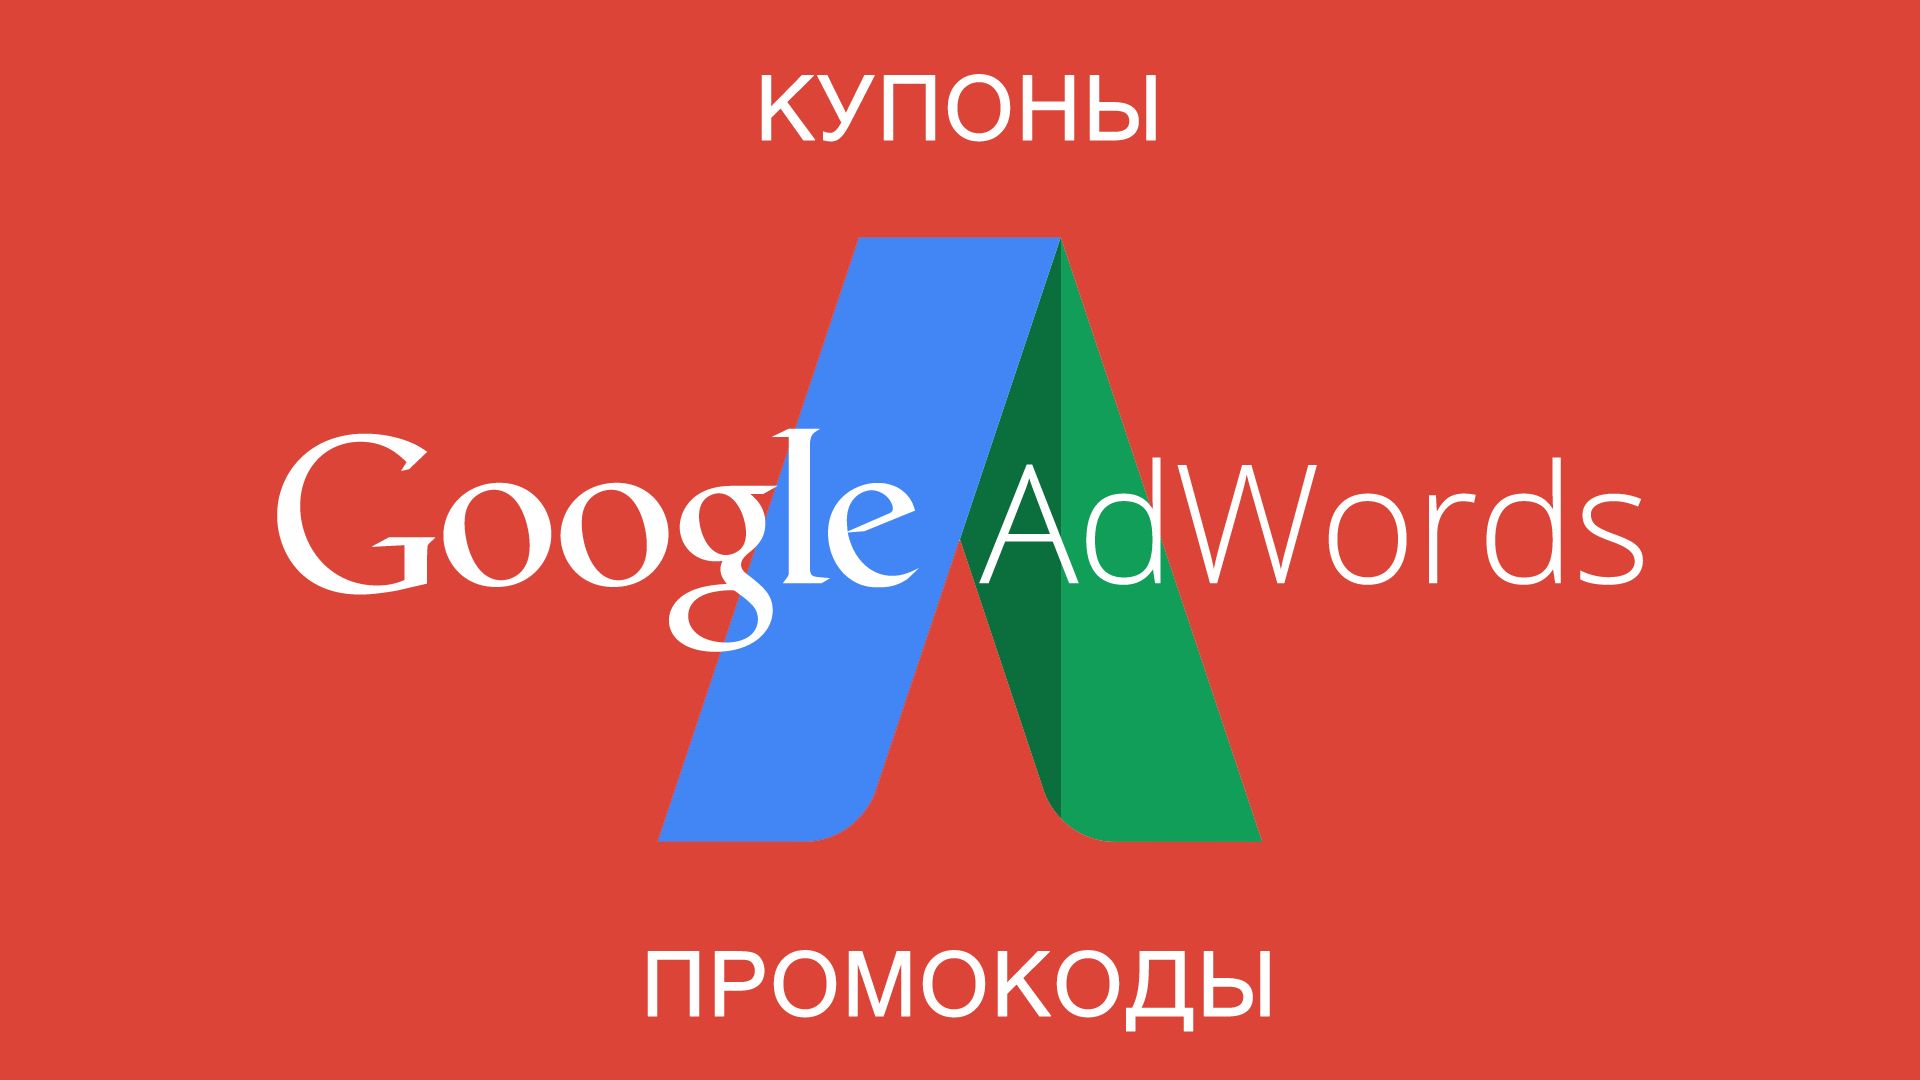 Google AdWords coupon / promotional code 60/20 $